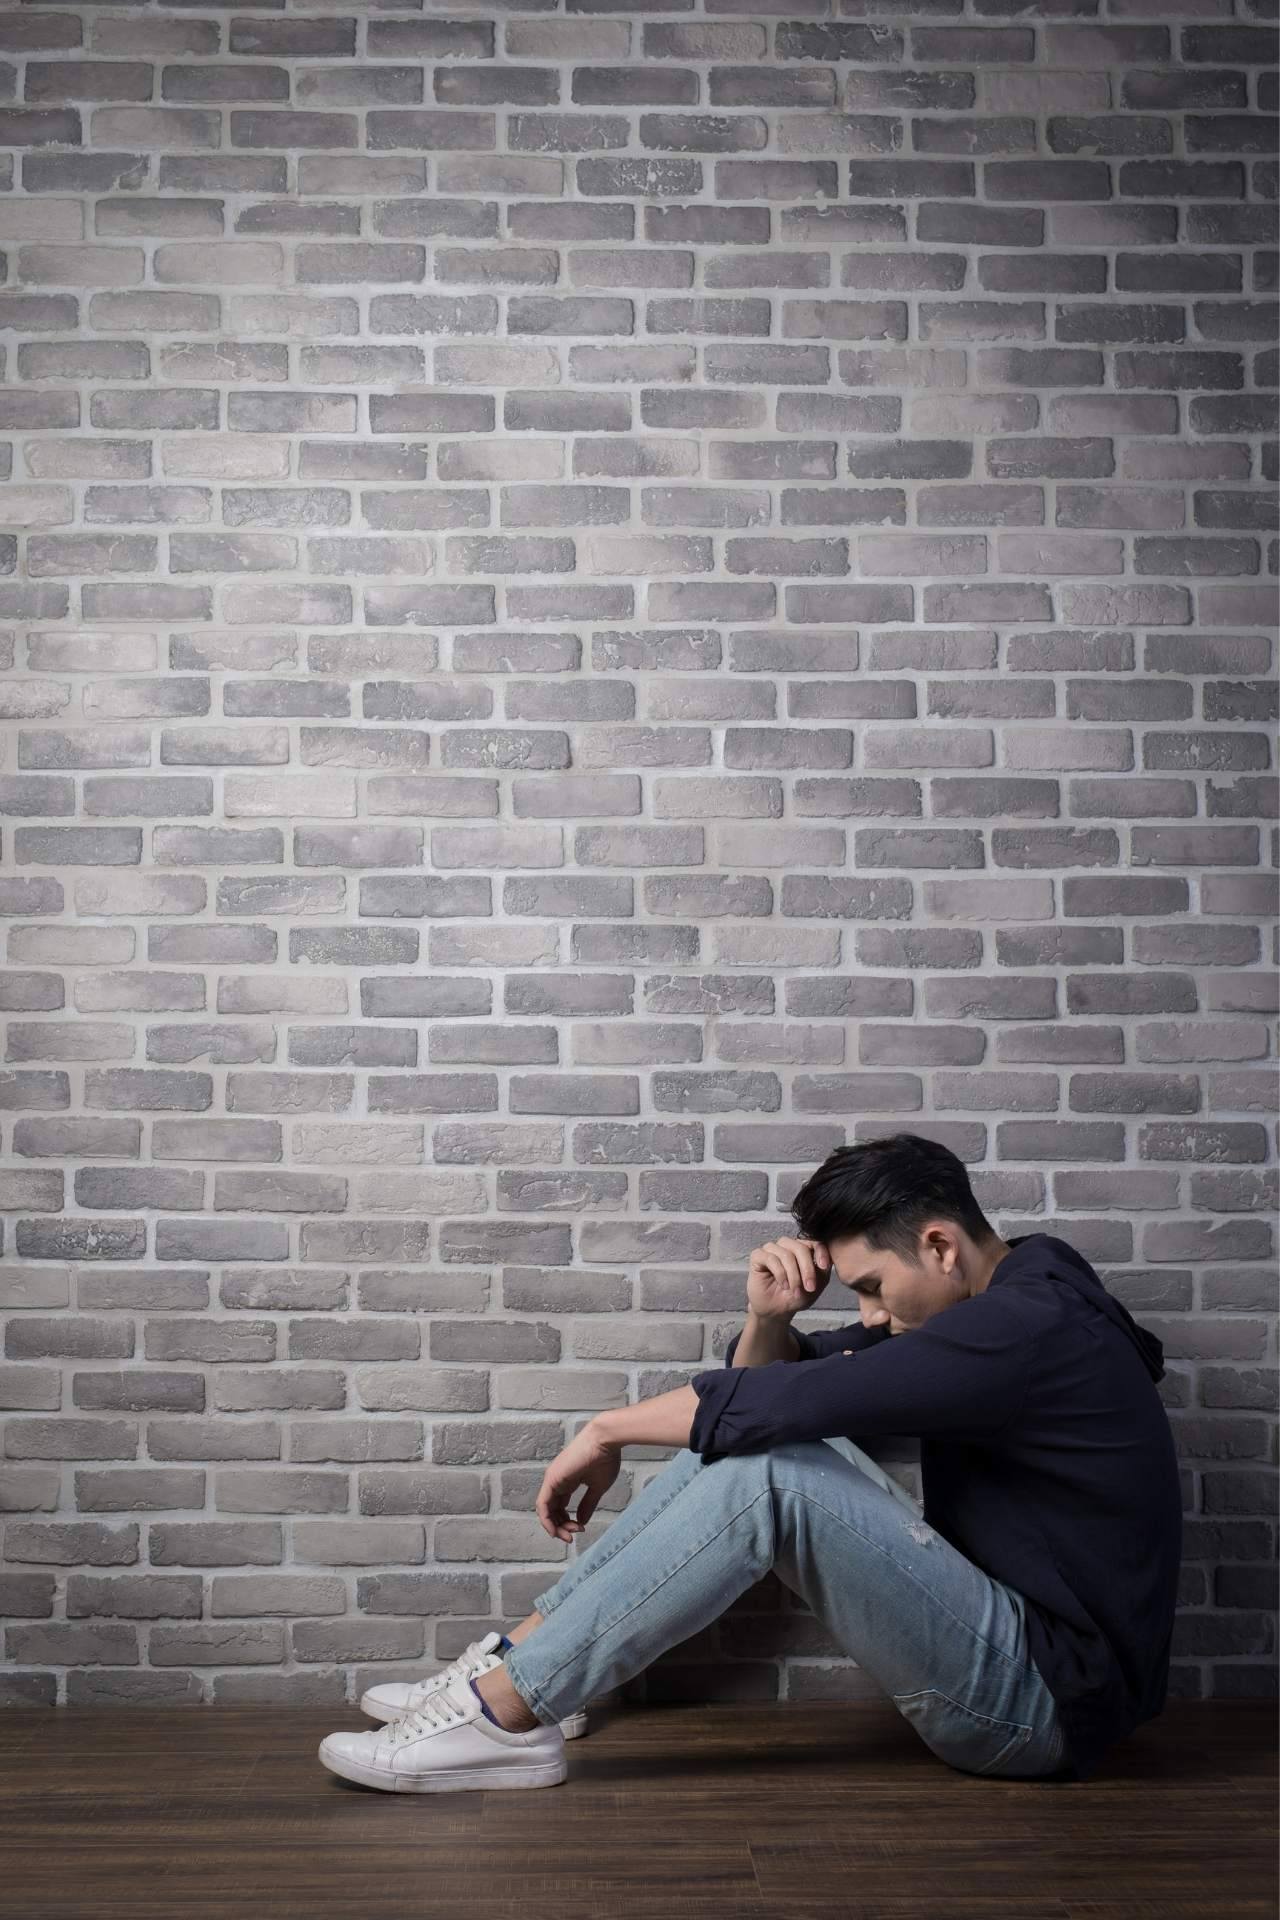 man experiencing sadness with brick background